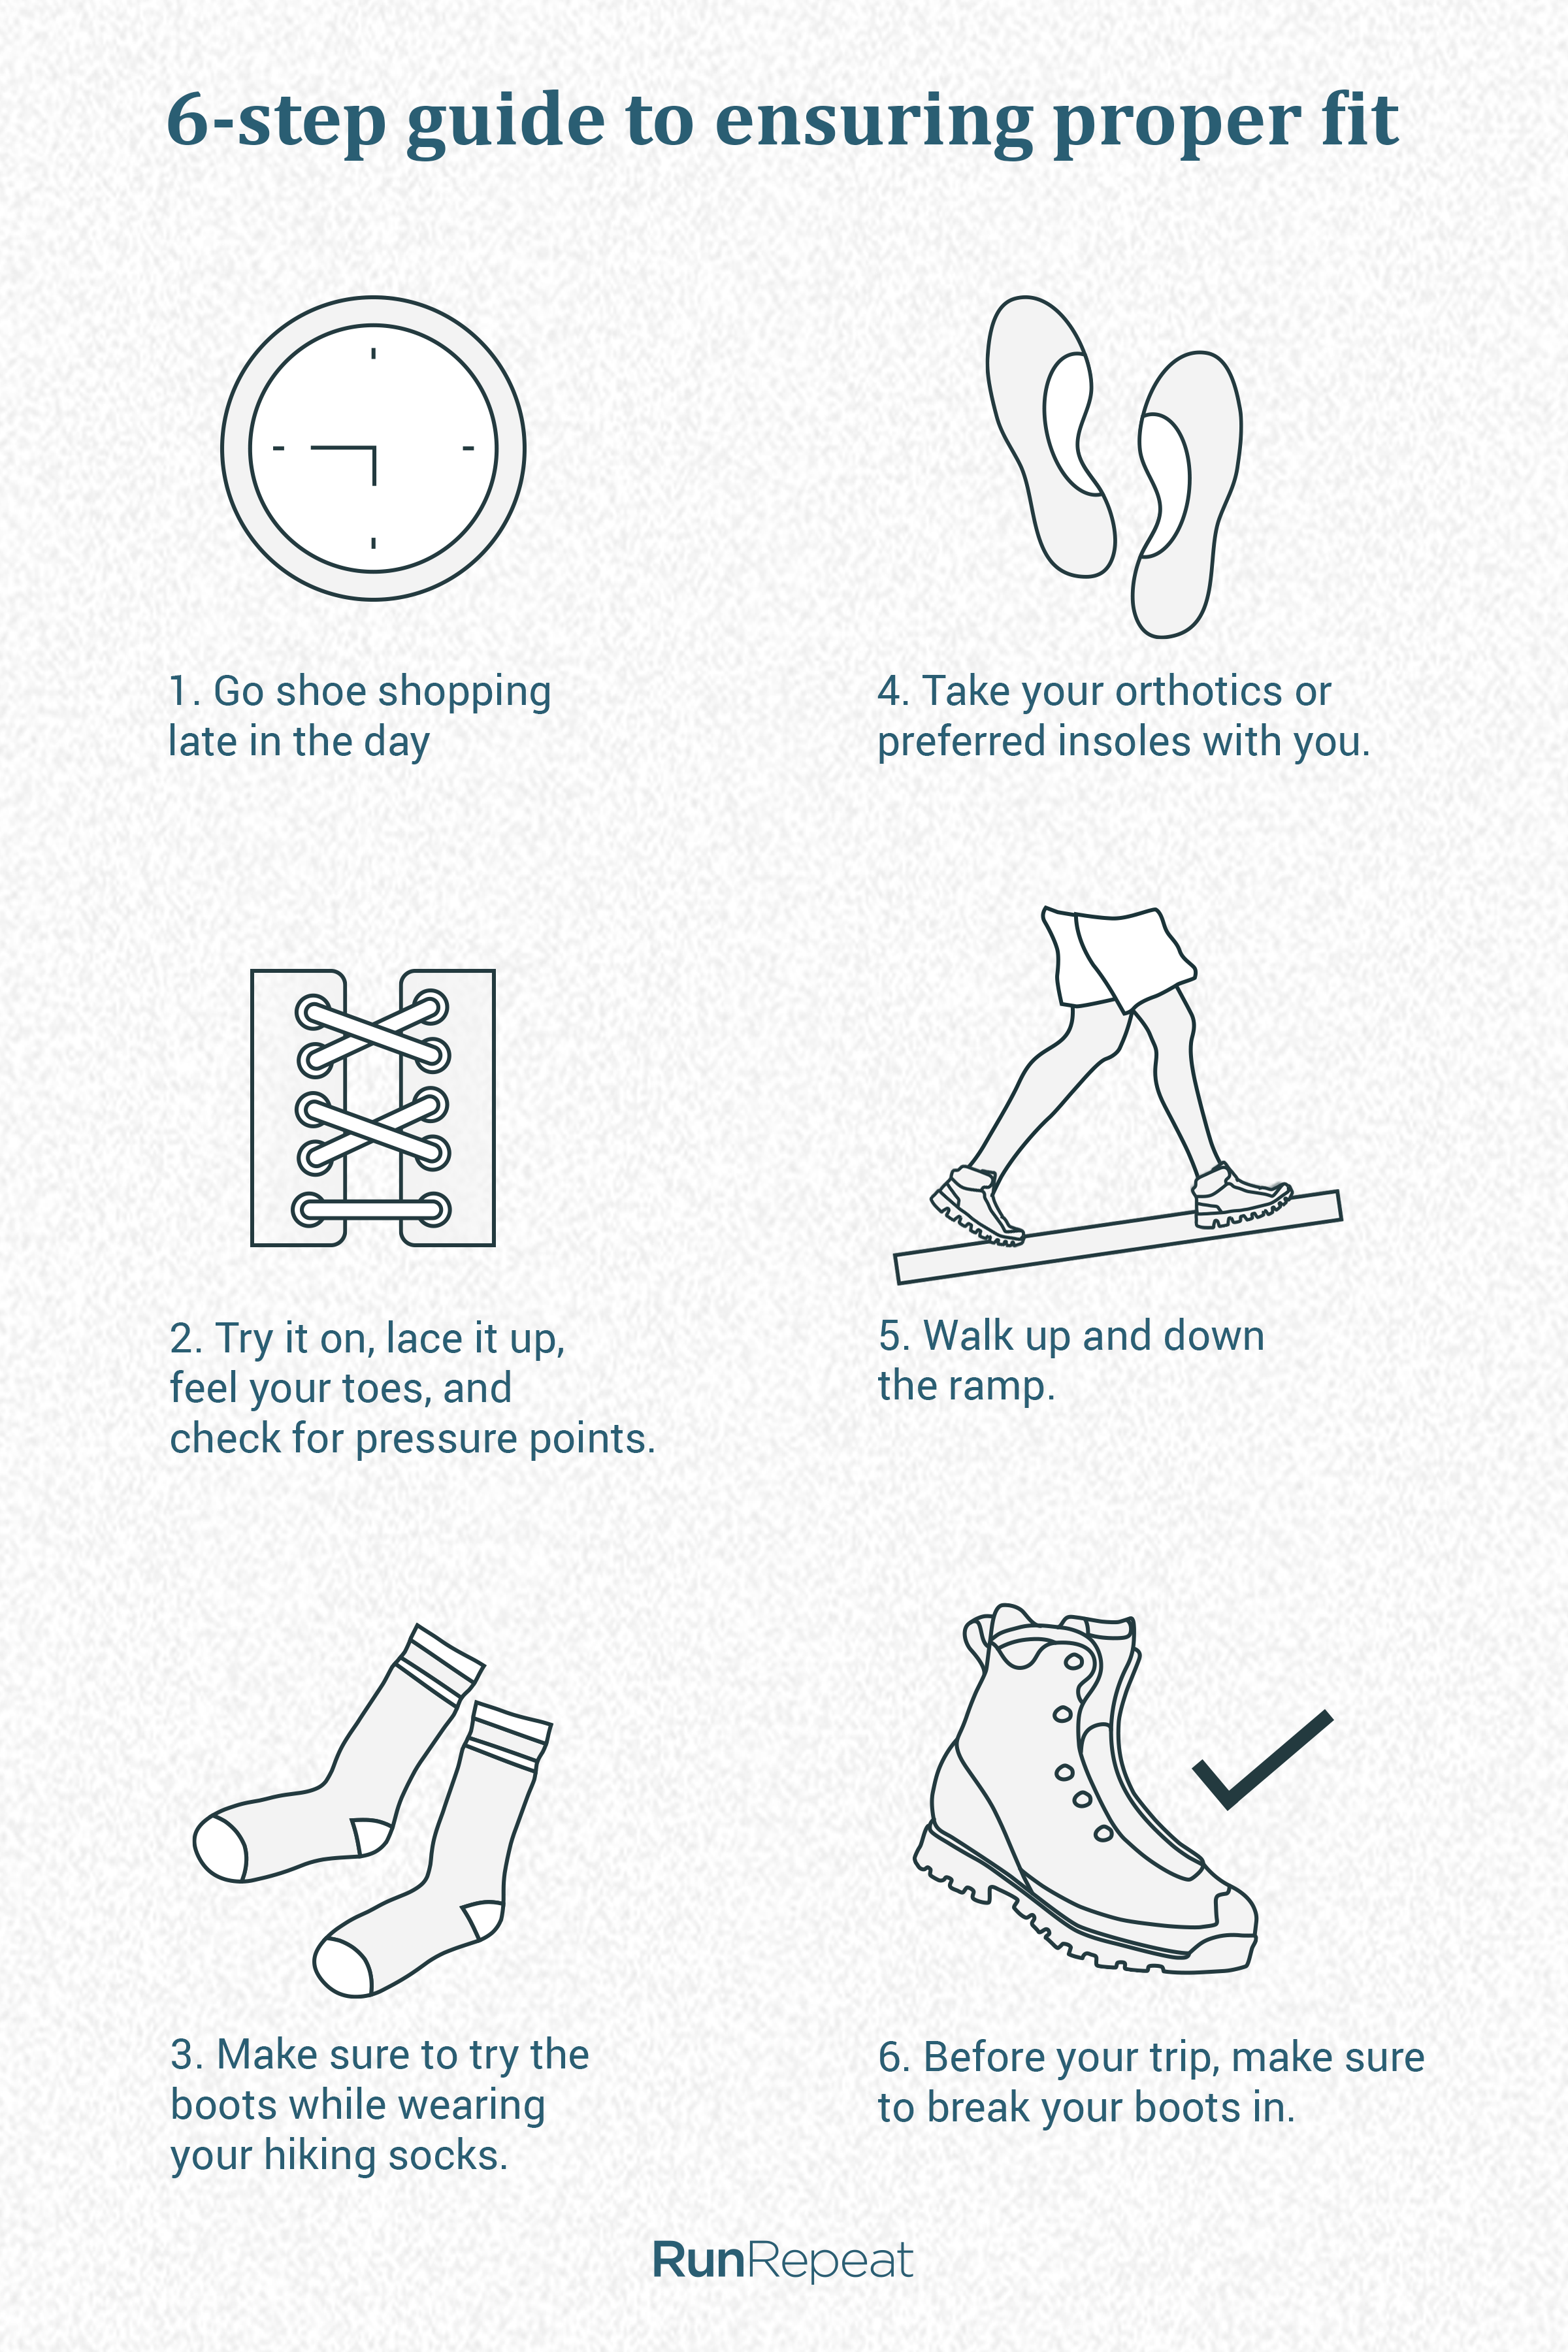 6 step guide to ensuring proper fit - hiking boots.png